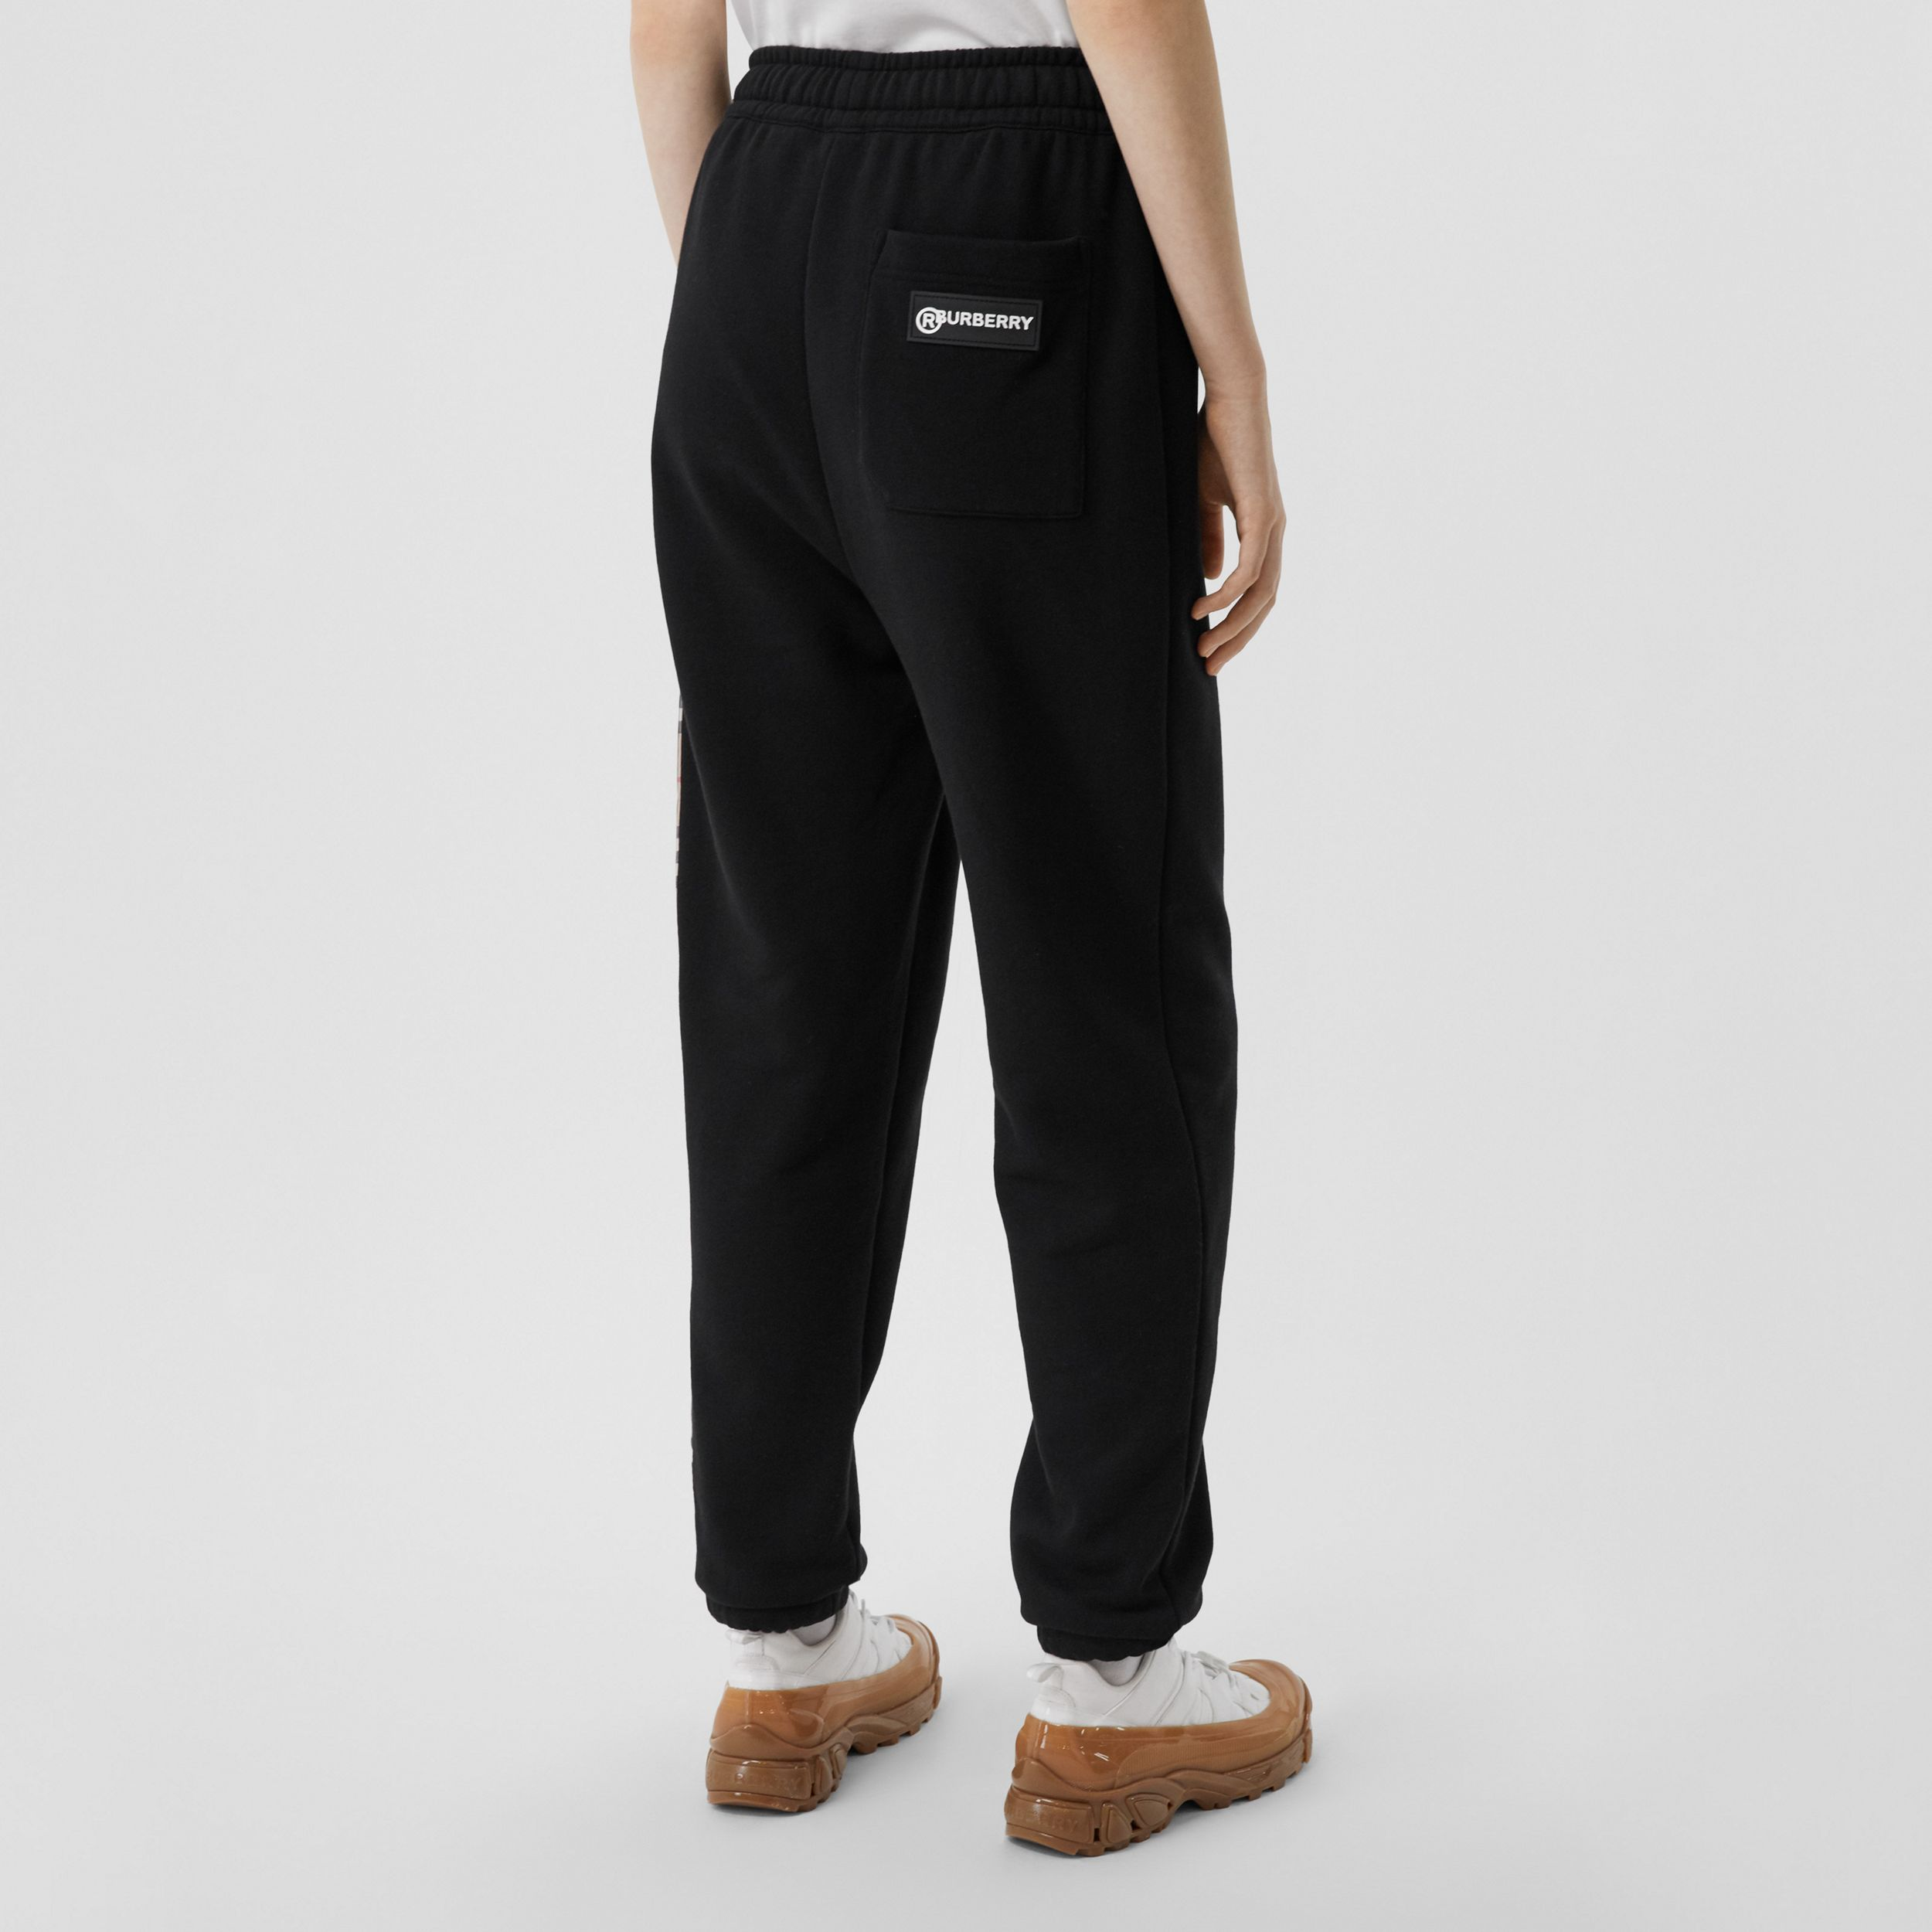 Vintage Check Panel Cotton Jogging Pants in Black - Women | Burberry - 3